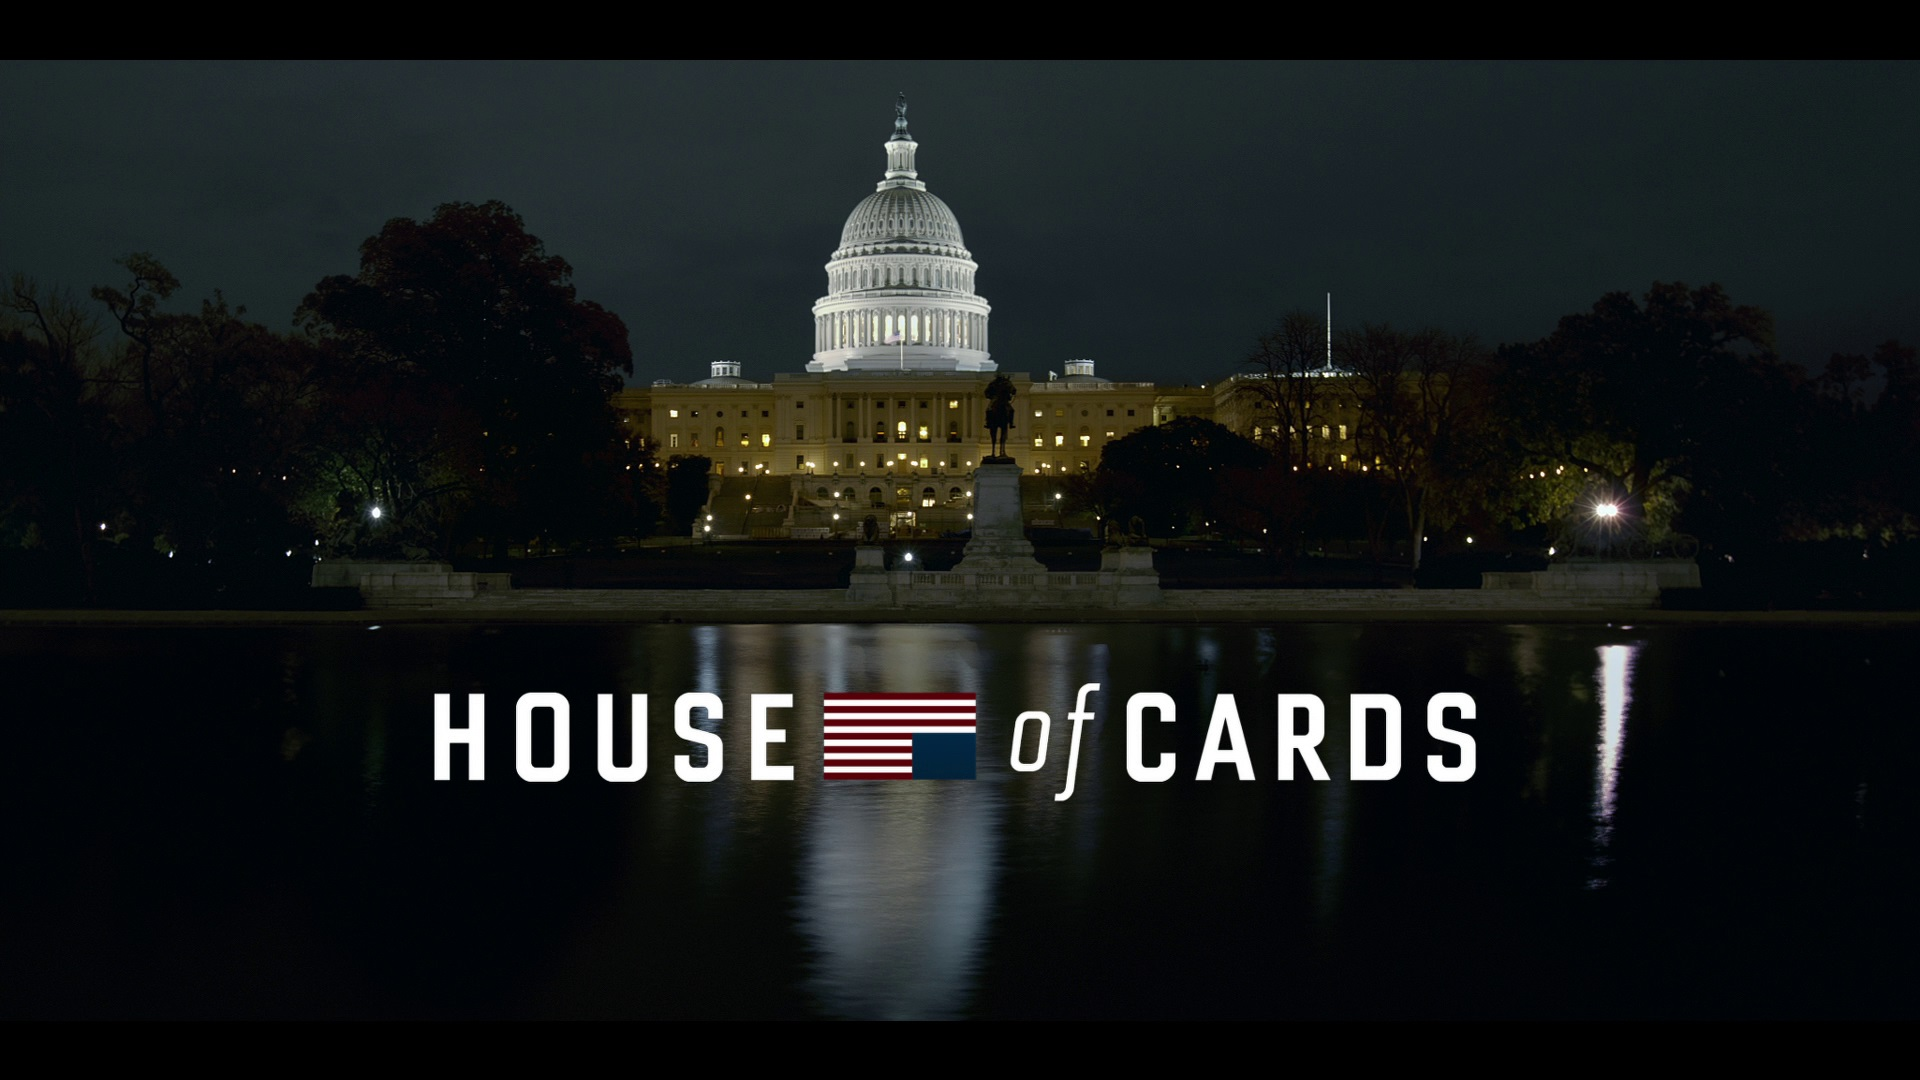 House of Cards wallpaper 1